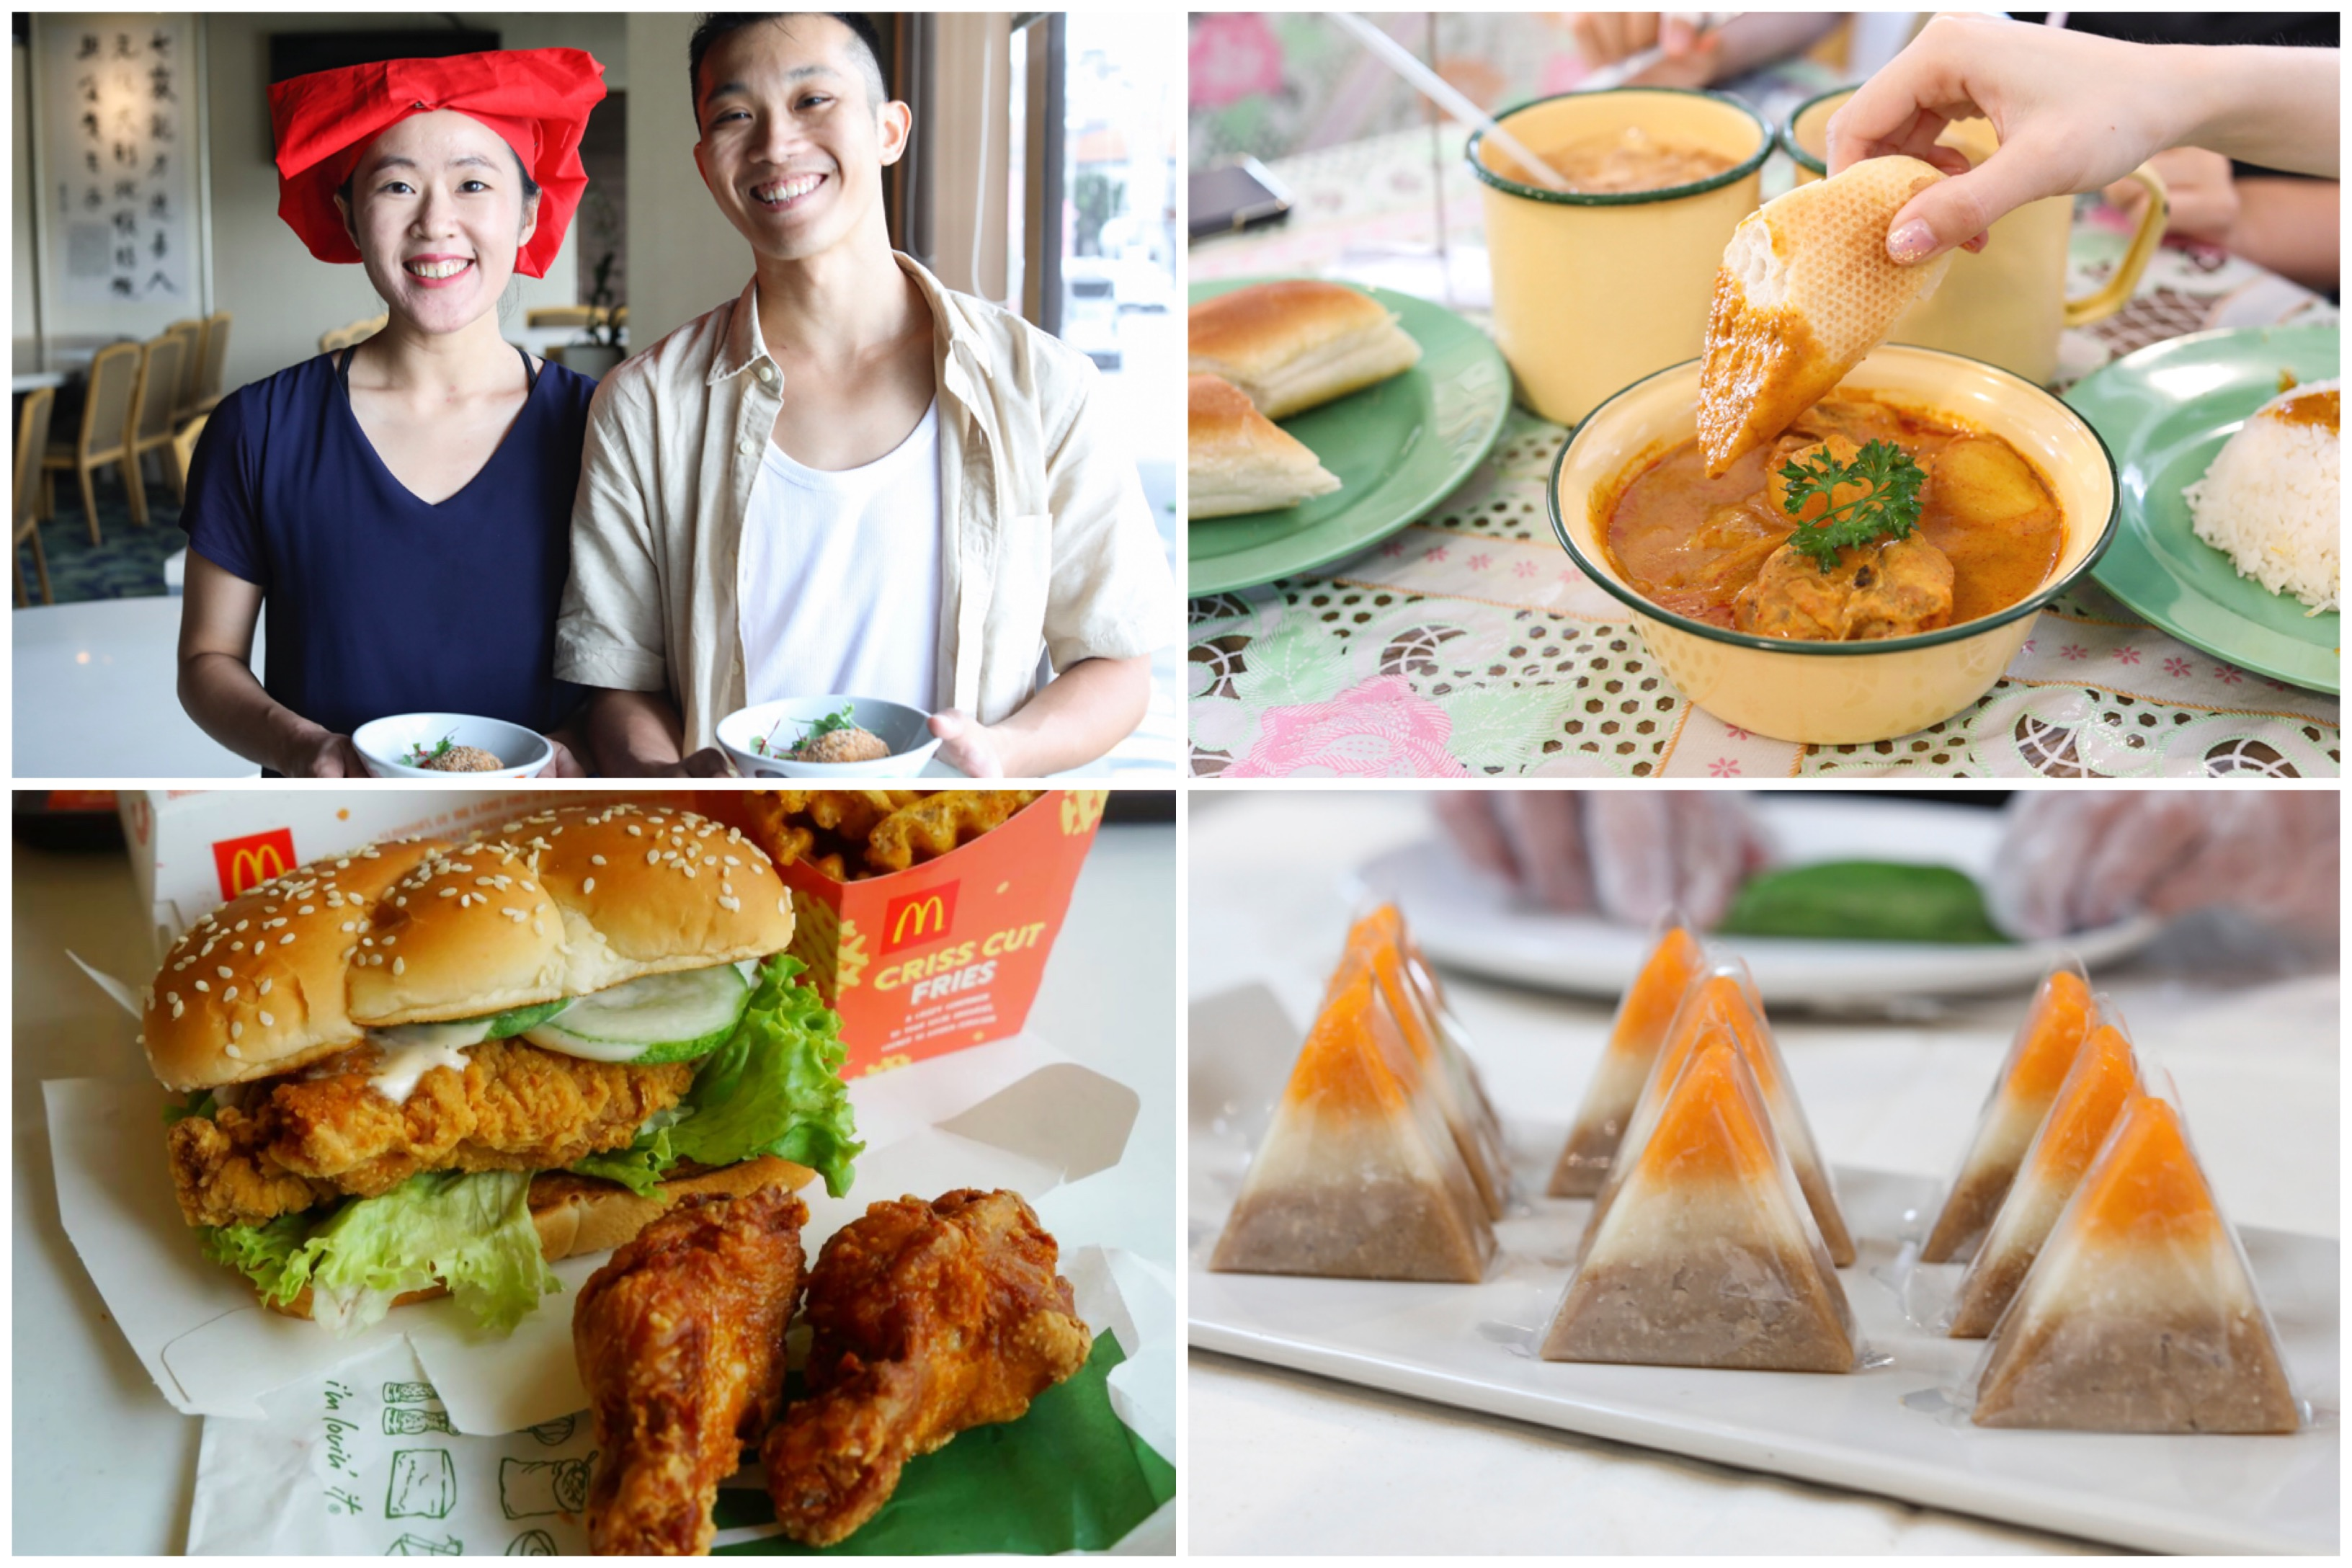 Singapore Food Festival – More Than 20 Foodie Events, Including The 50 Cents Fest, McDonald's Ha Ha Cheong Gai Chicken Burger, and Curry Day